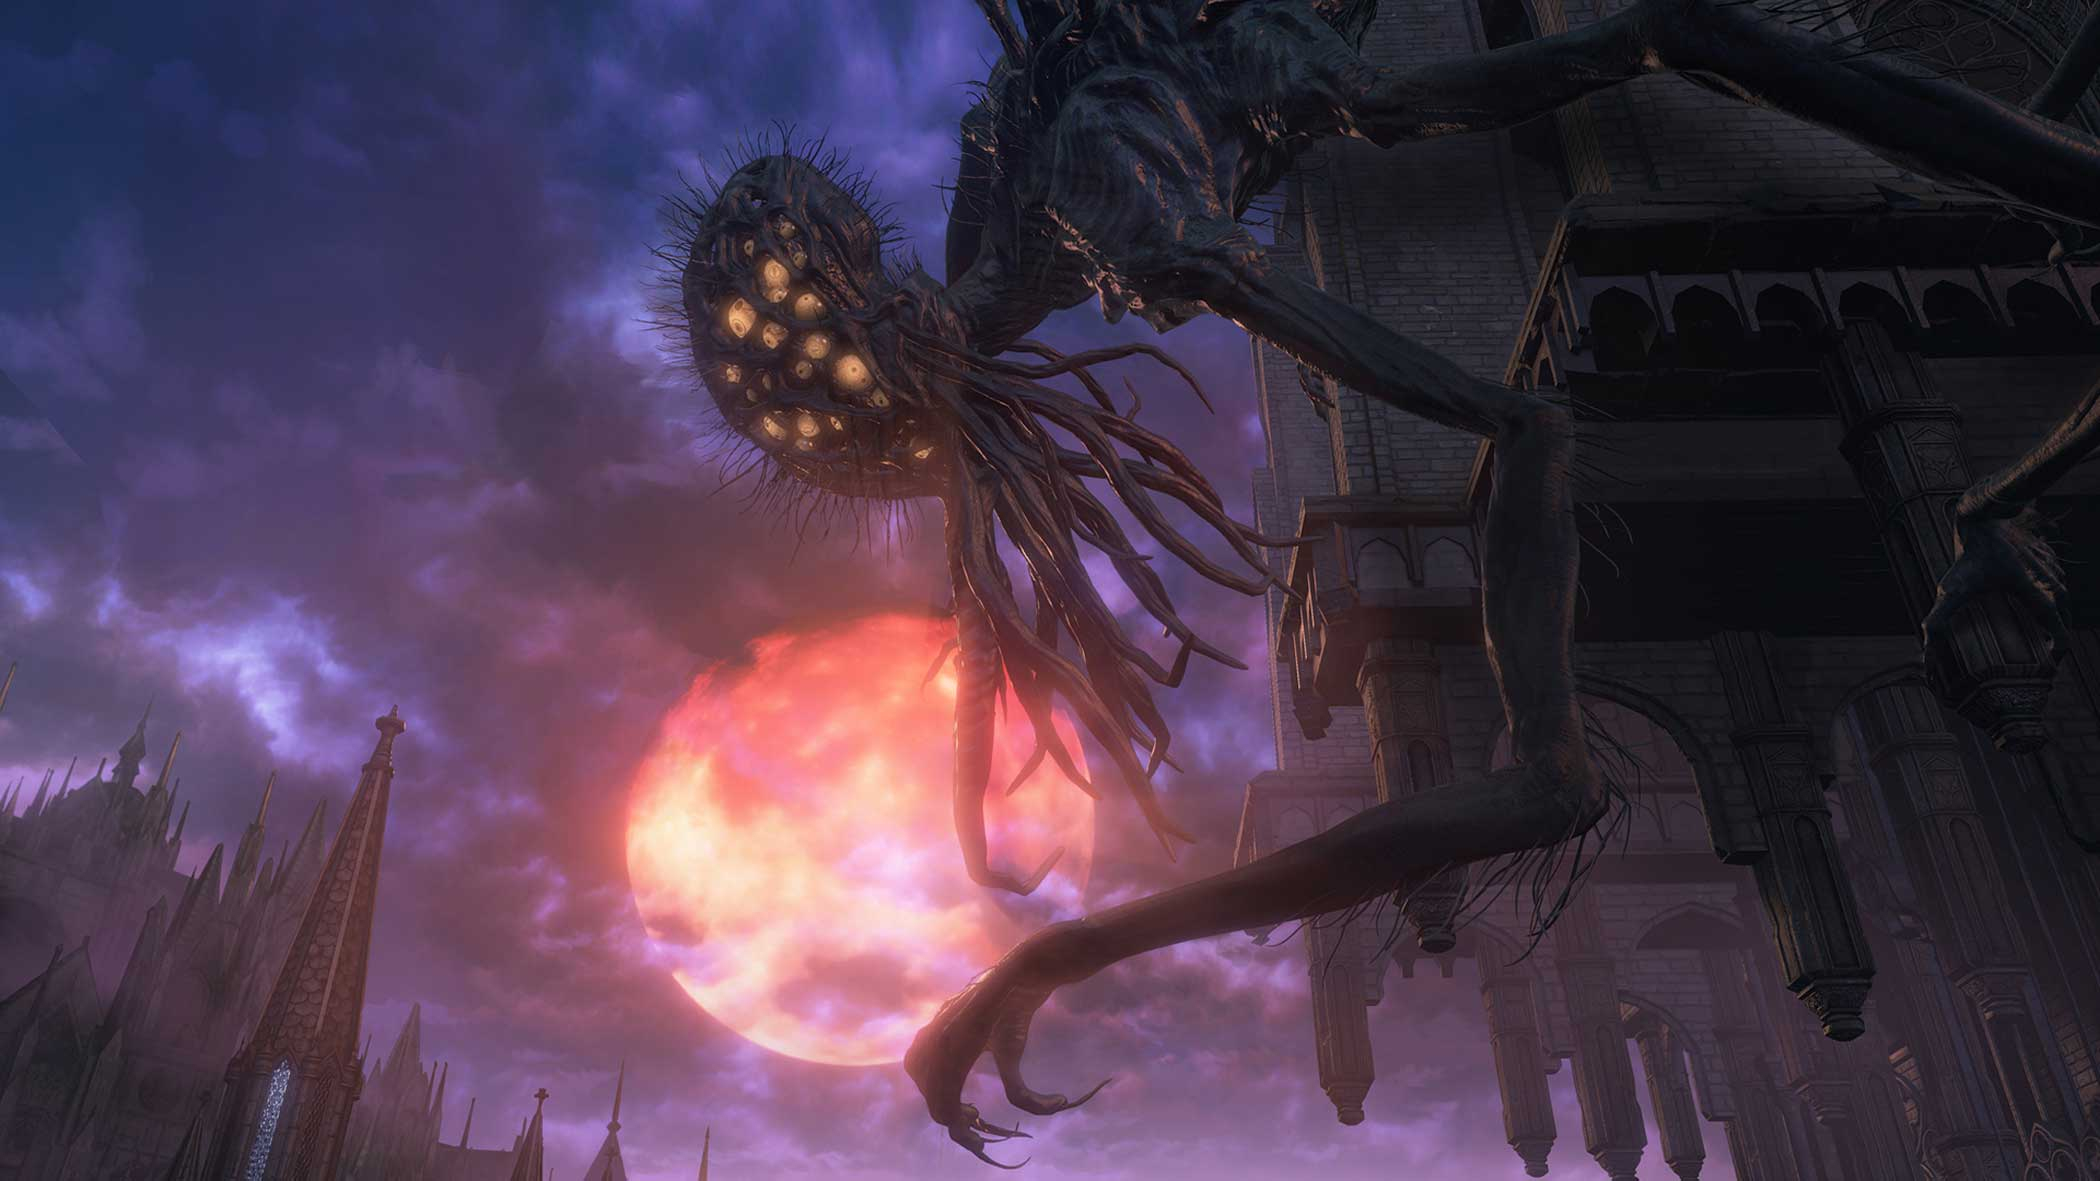 """<b>Bloodborne</b> Design Process:<i> """"Bloodborne is set in a dark and secluded city called Yharnam, a gothic cityscape filled with Victorian motifs and shrouded in prejudice and mystery. The processing power of the PlayStation 4 allowed us to bring to life the gritty and horrifying gothic Victorian architecture and décor...""""</i> - FromSoftware"""